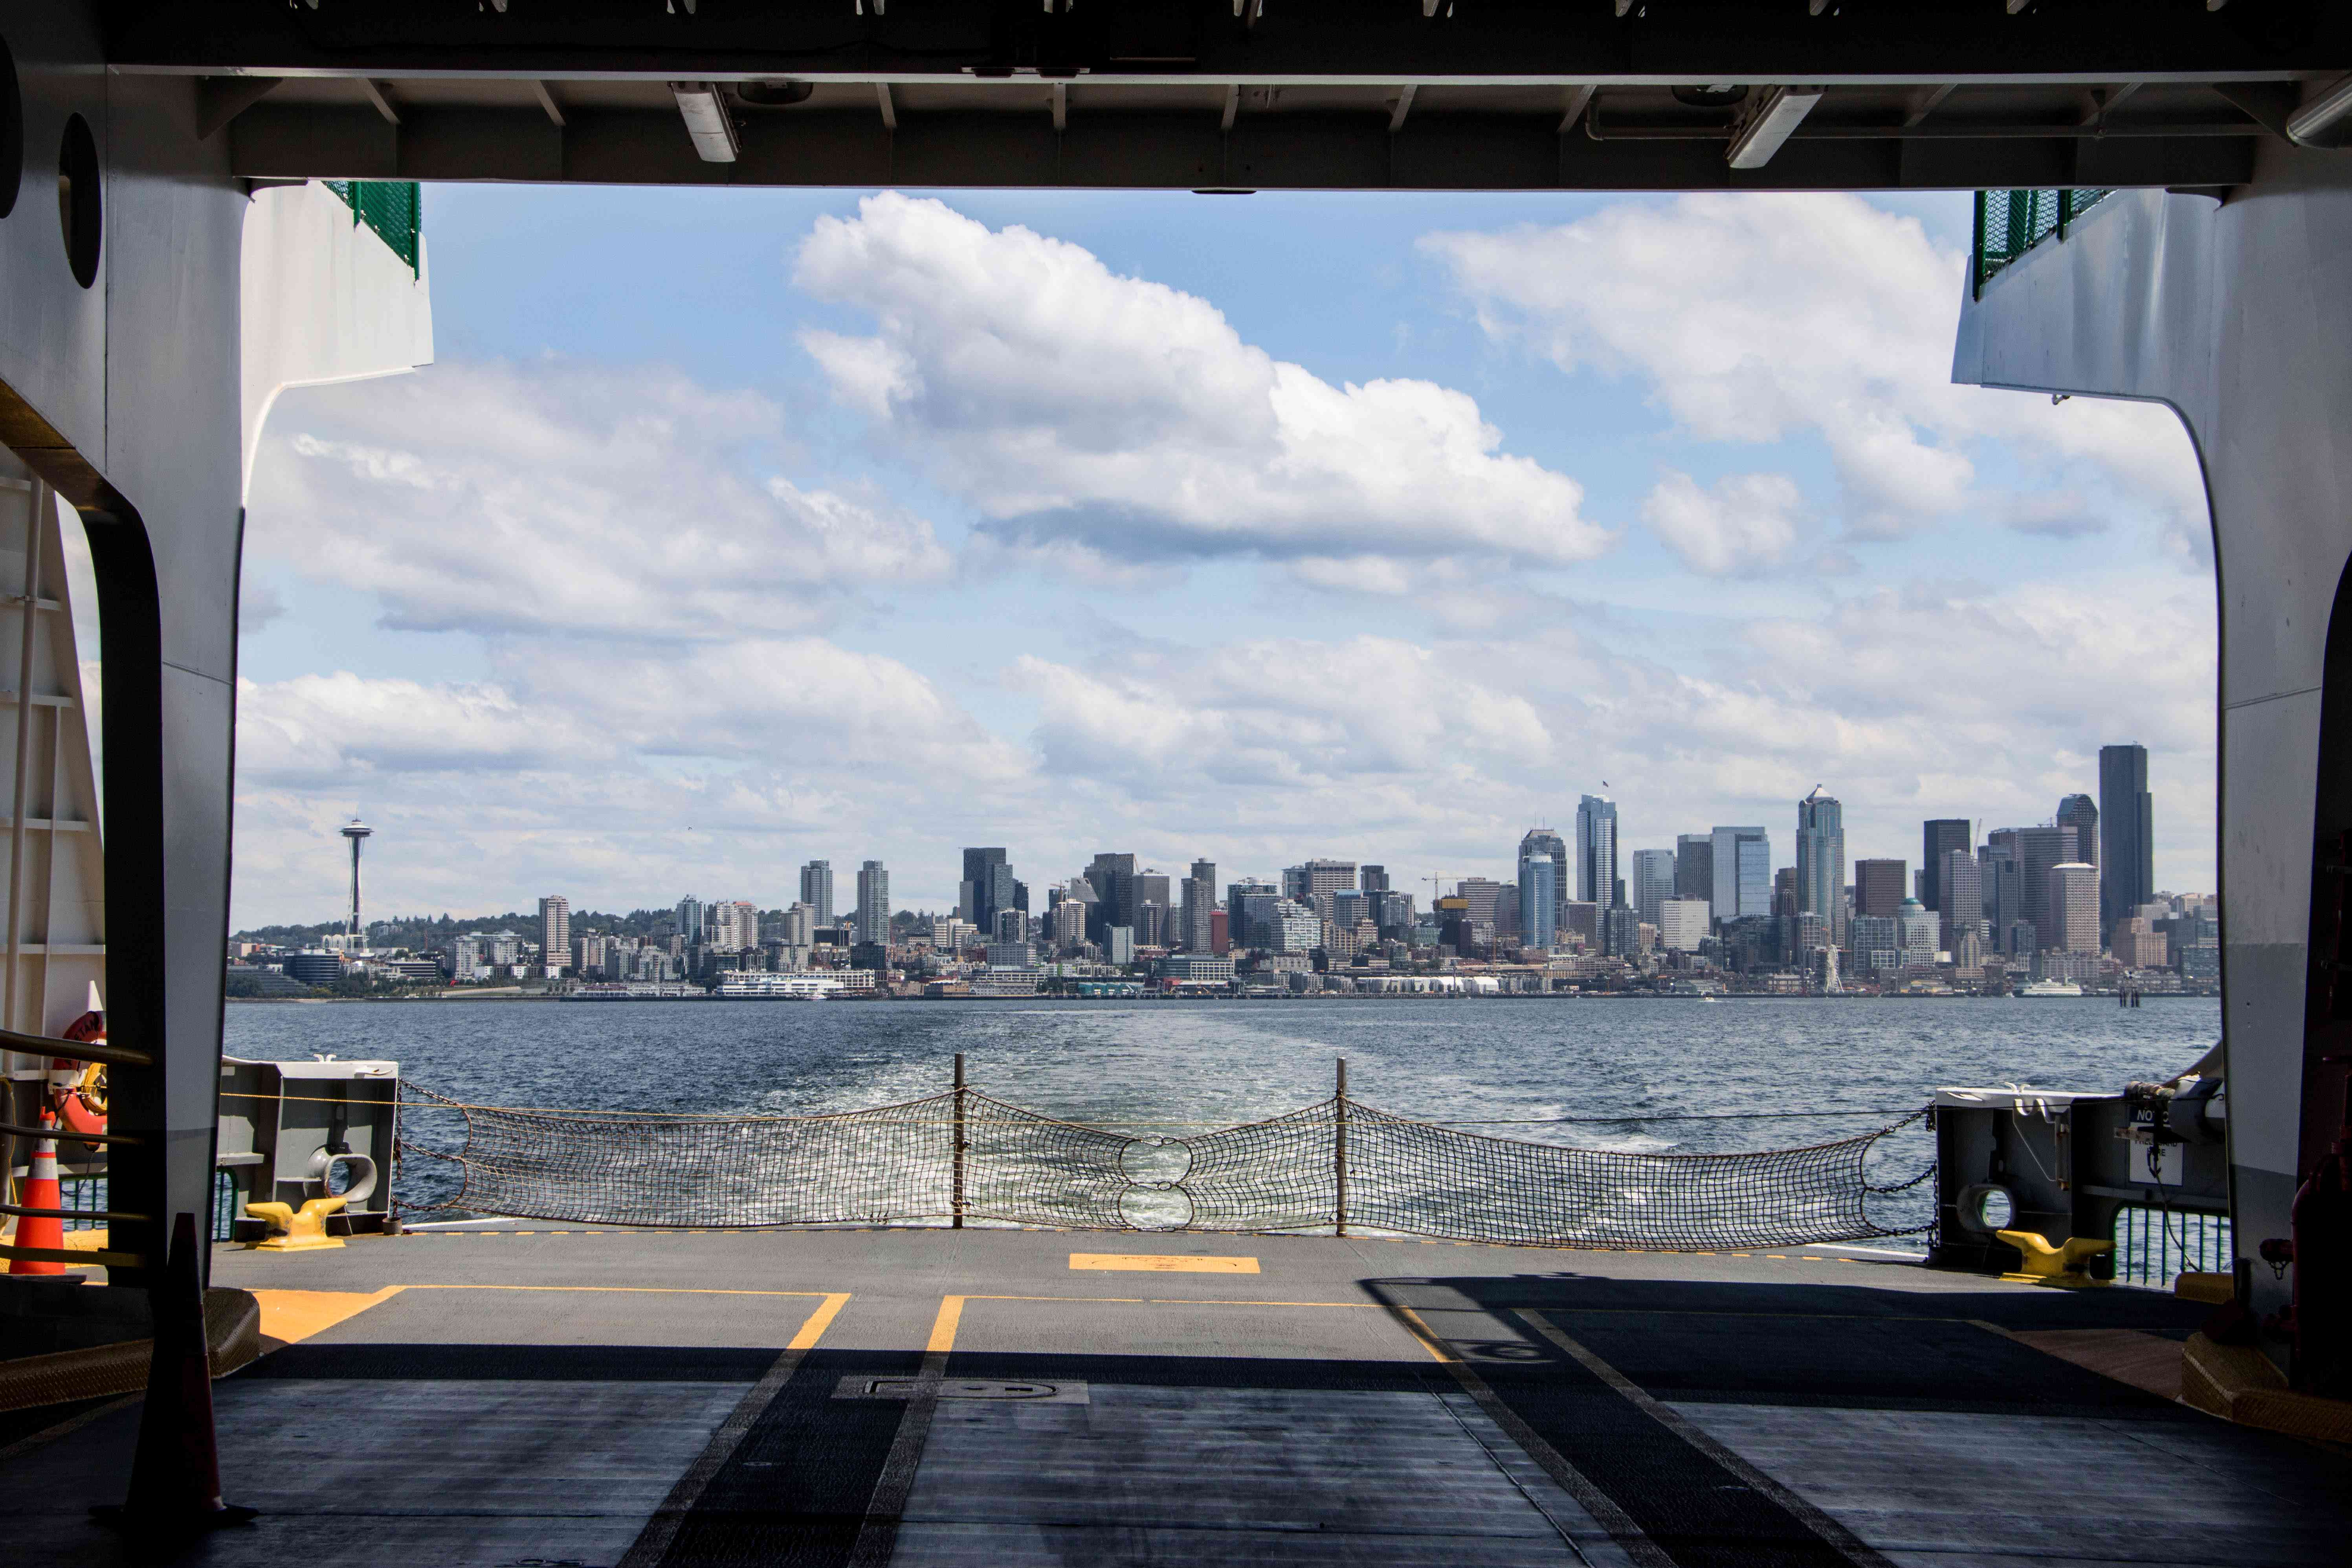 Vista de la ciudad desde un ferry en Seattle, Washington